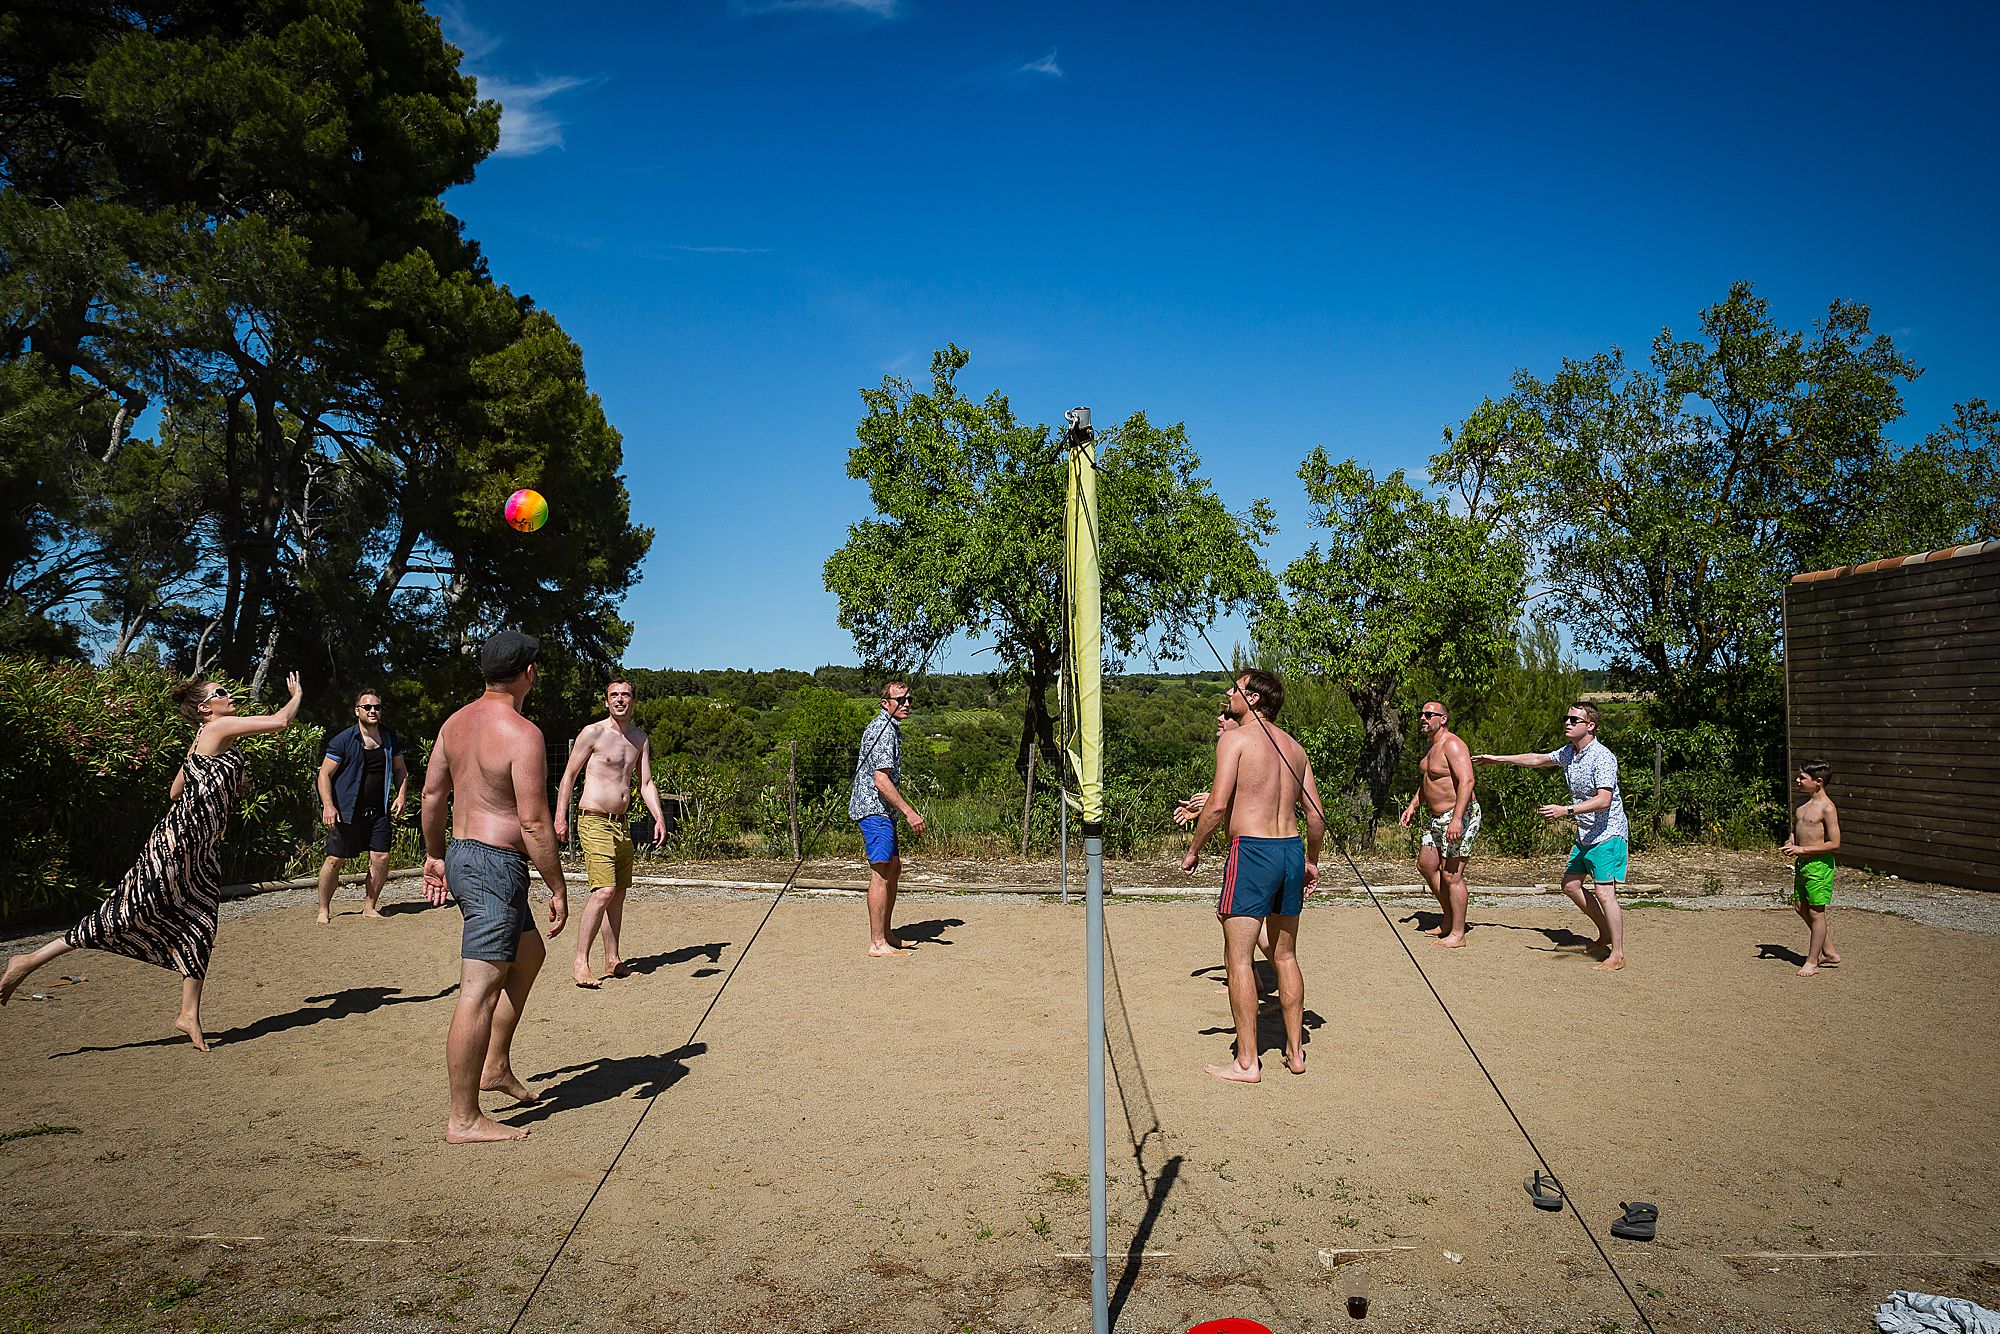 volley ball games in the south of France